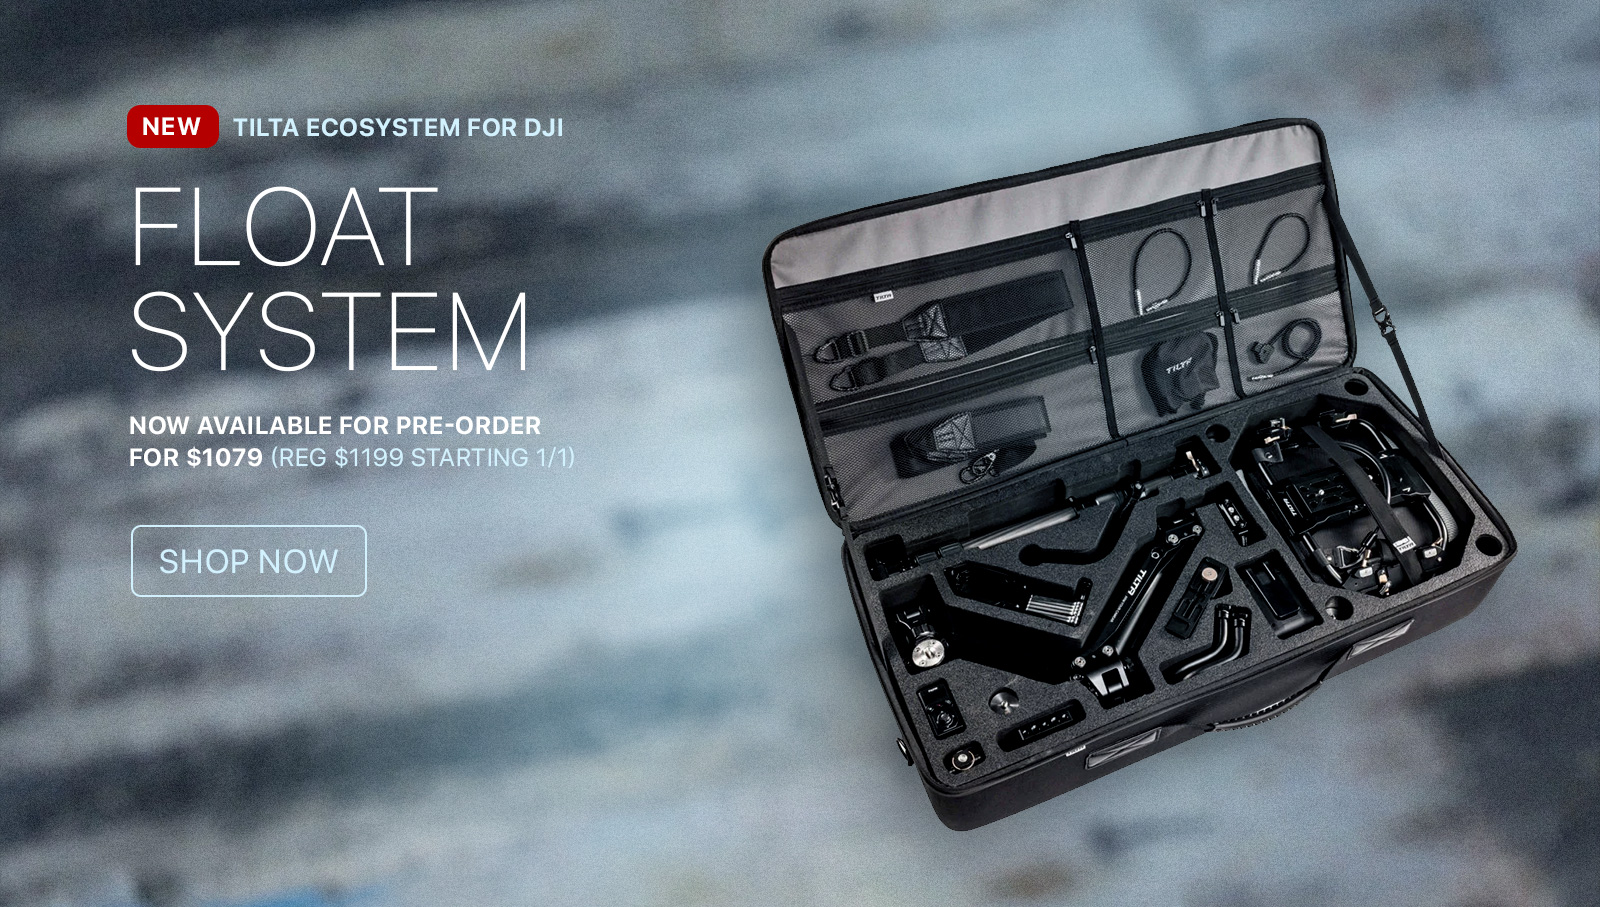 float system now available for ordering